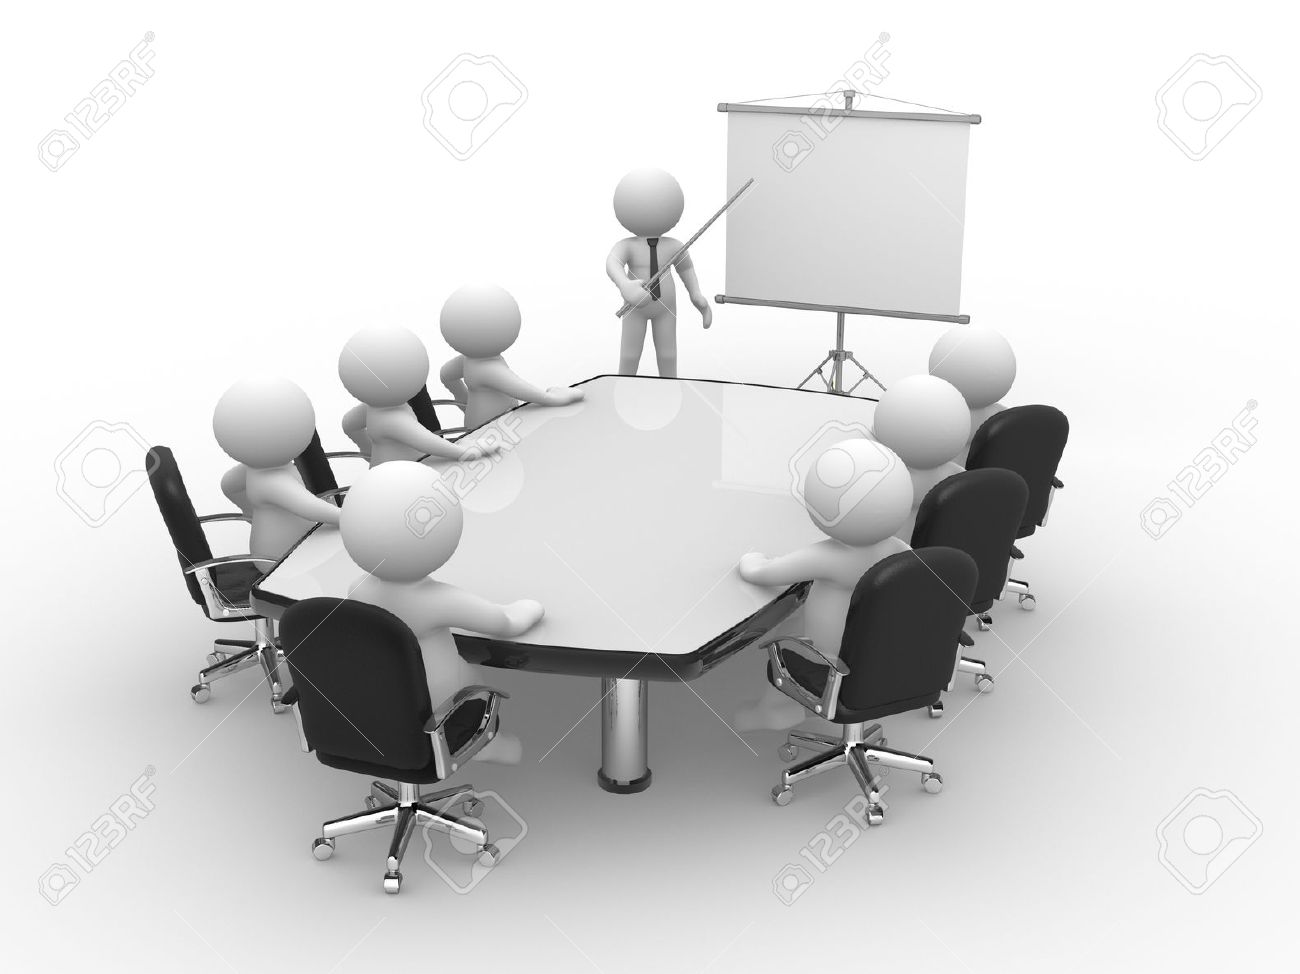 Conference table clipart free.